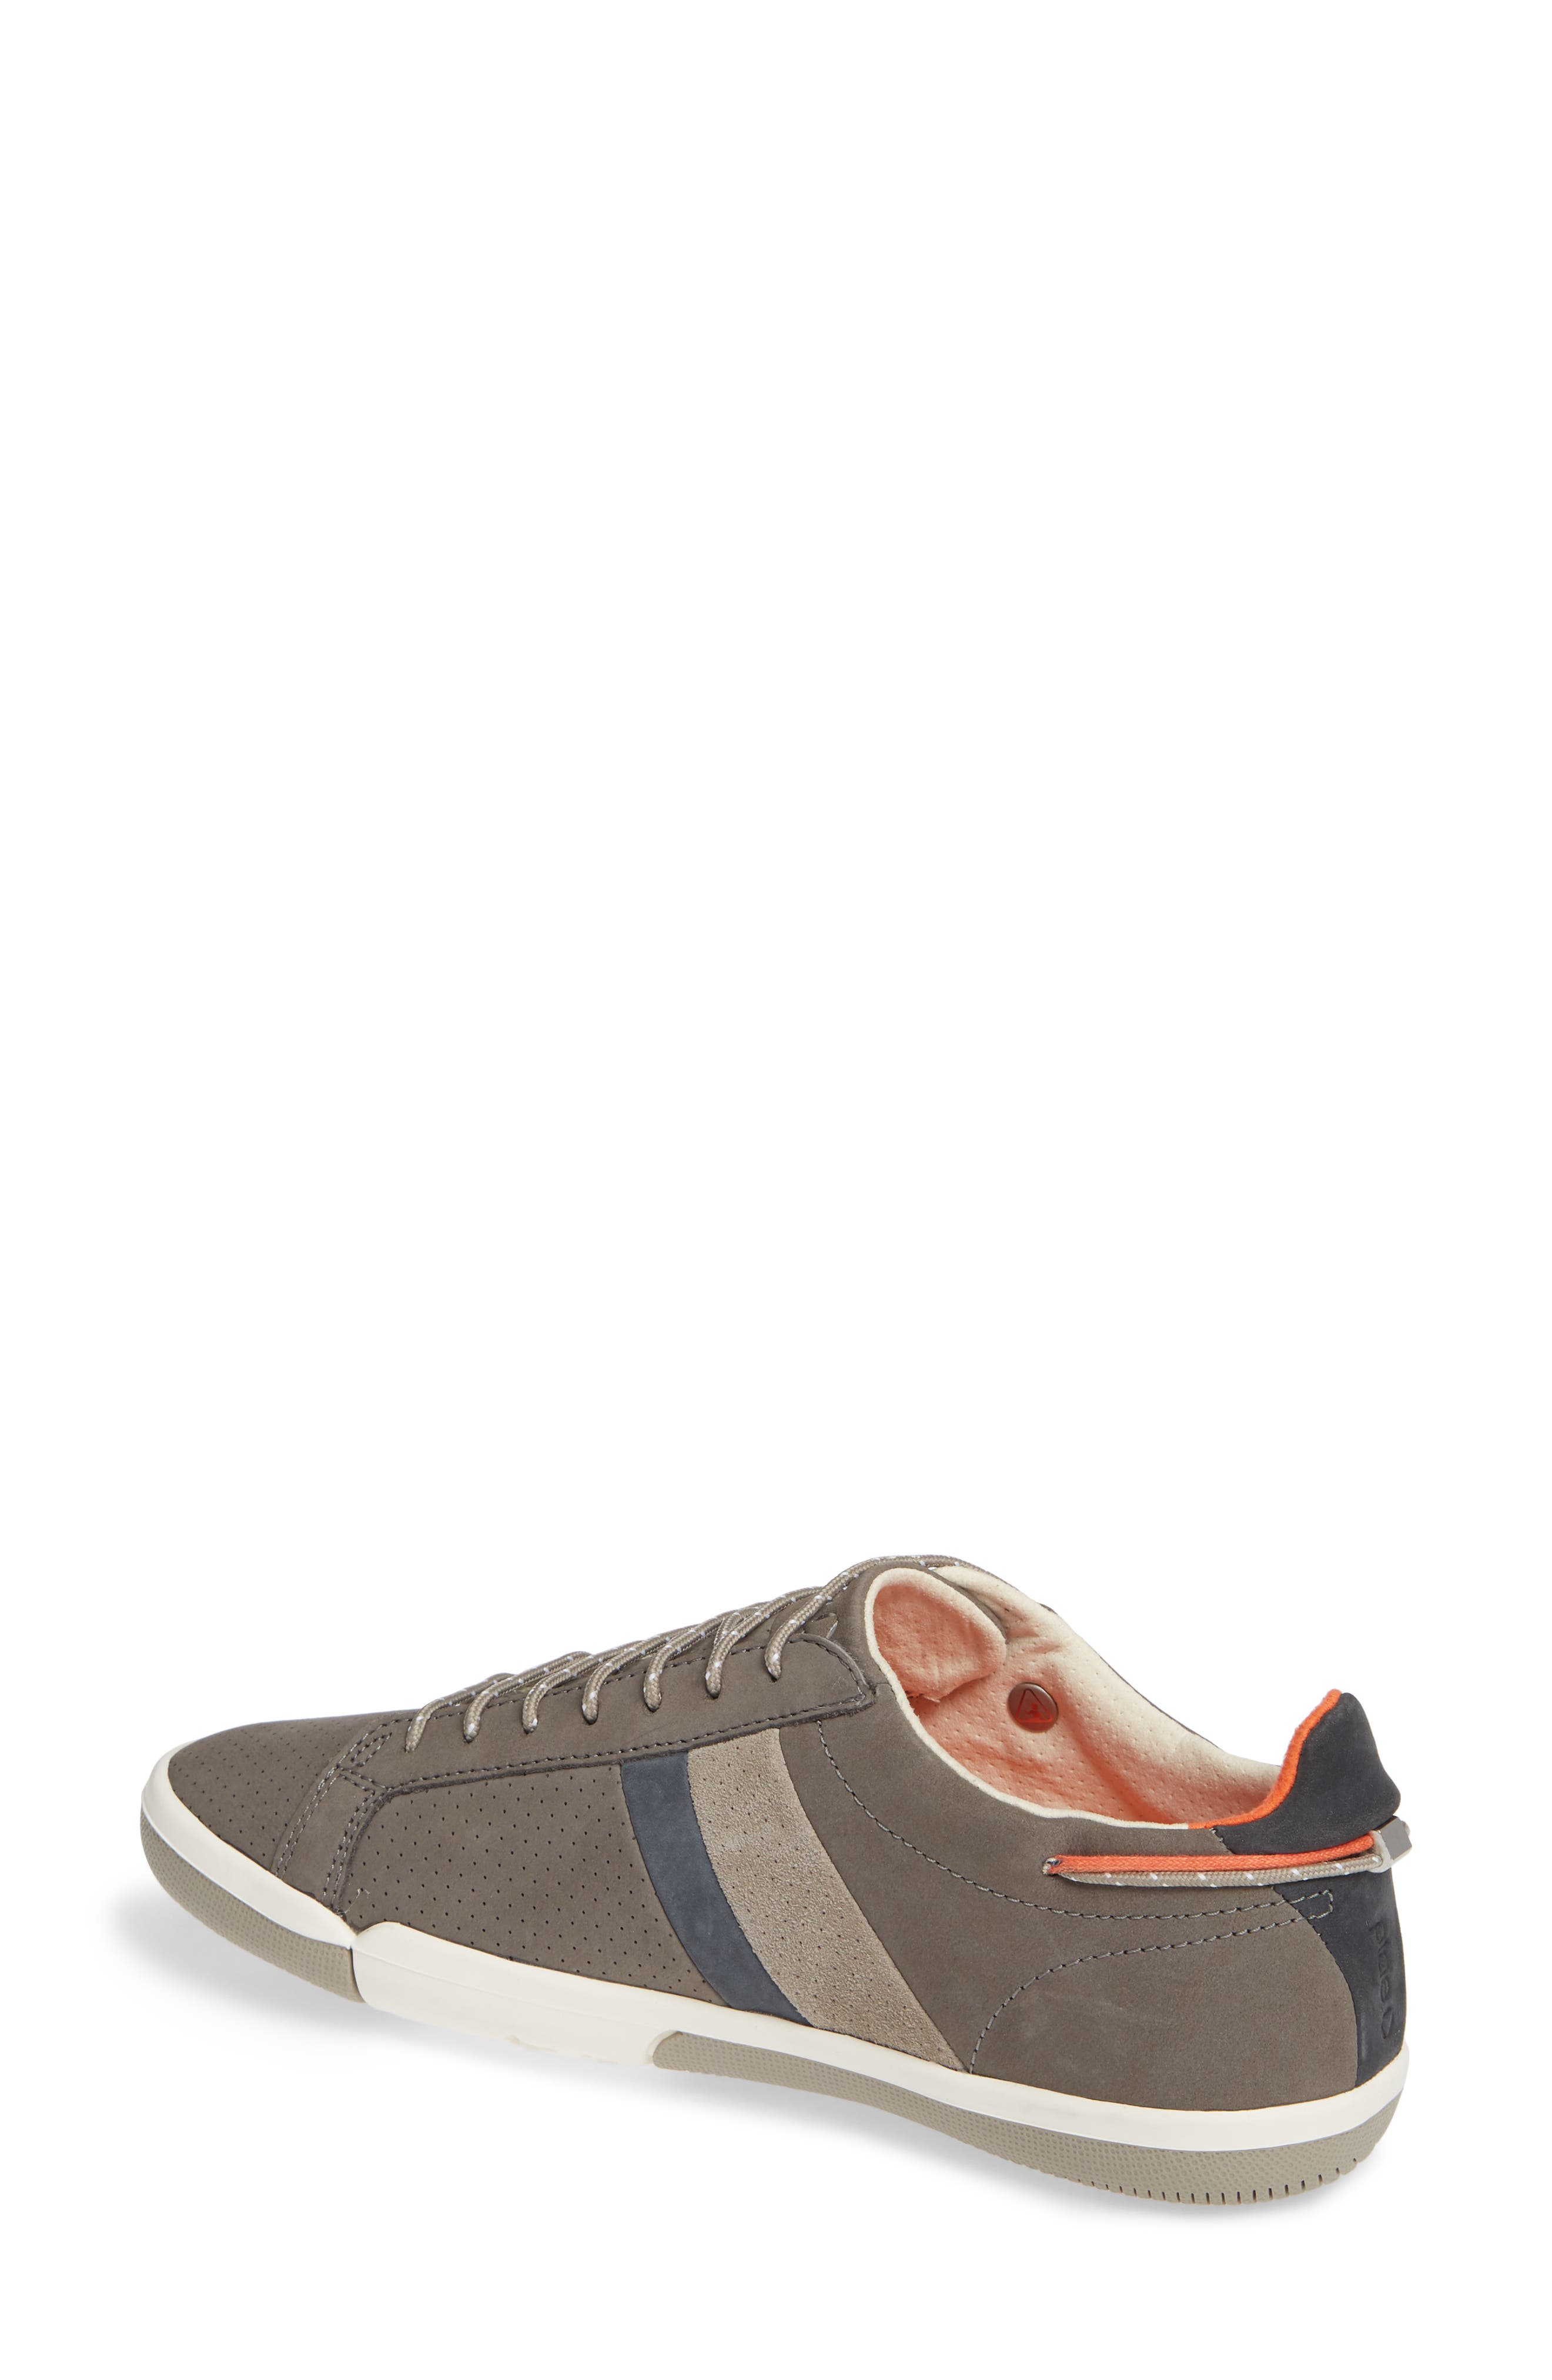 Mulberry Sneaker,                             Alternate thumbnail 2, color,                             GREY NUBUCK LEATHER